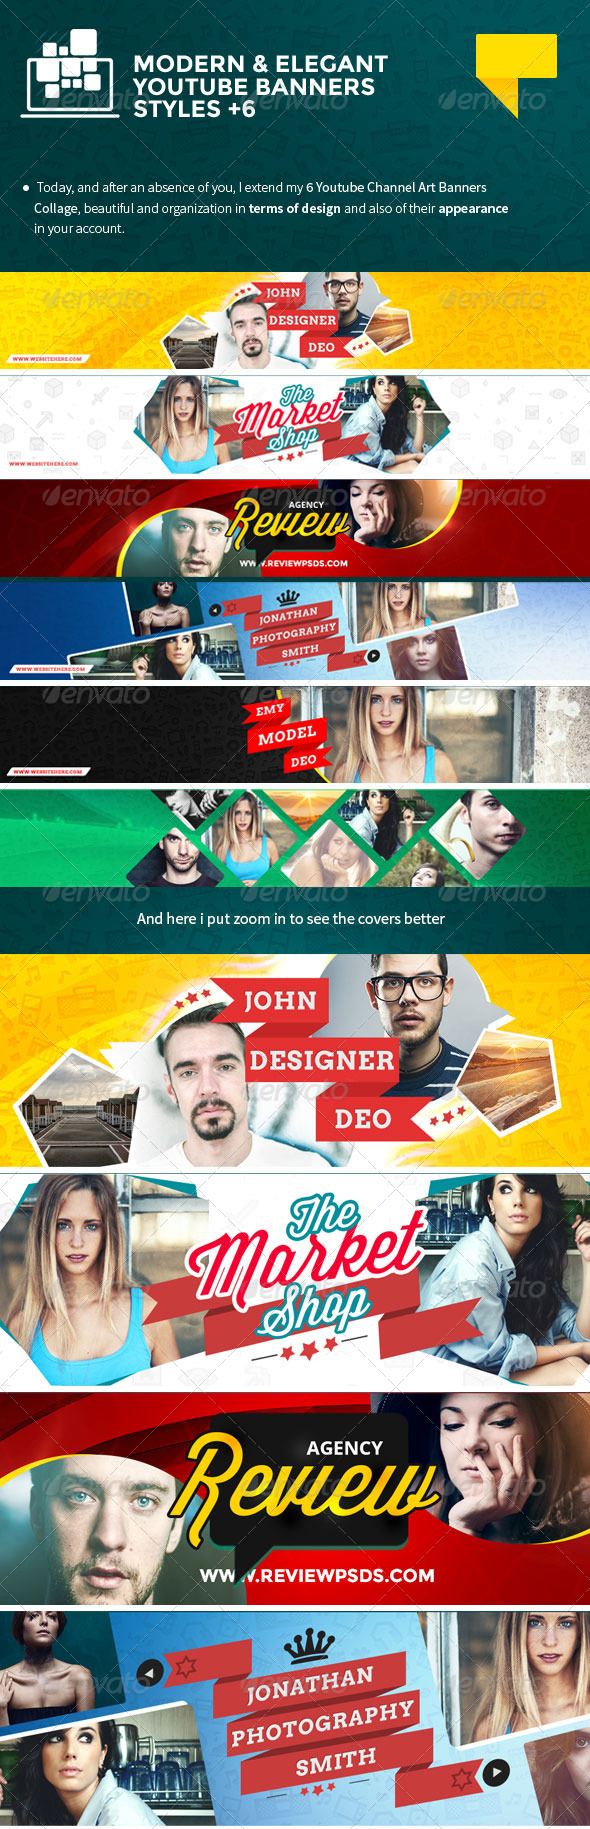 6 elegant youtube banner templates